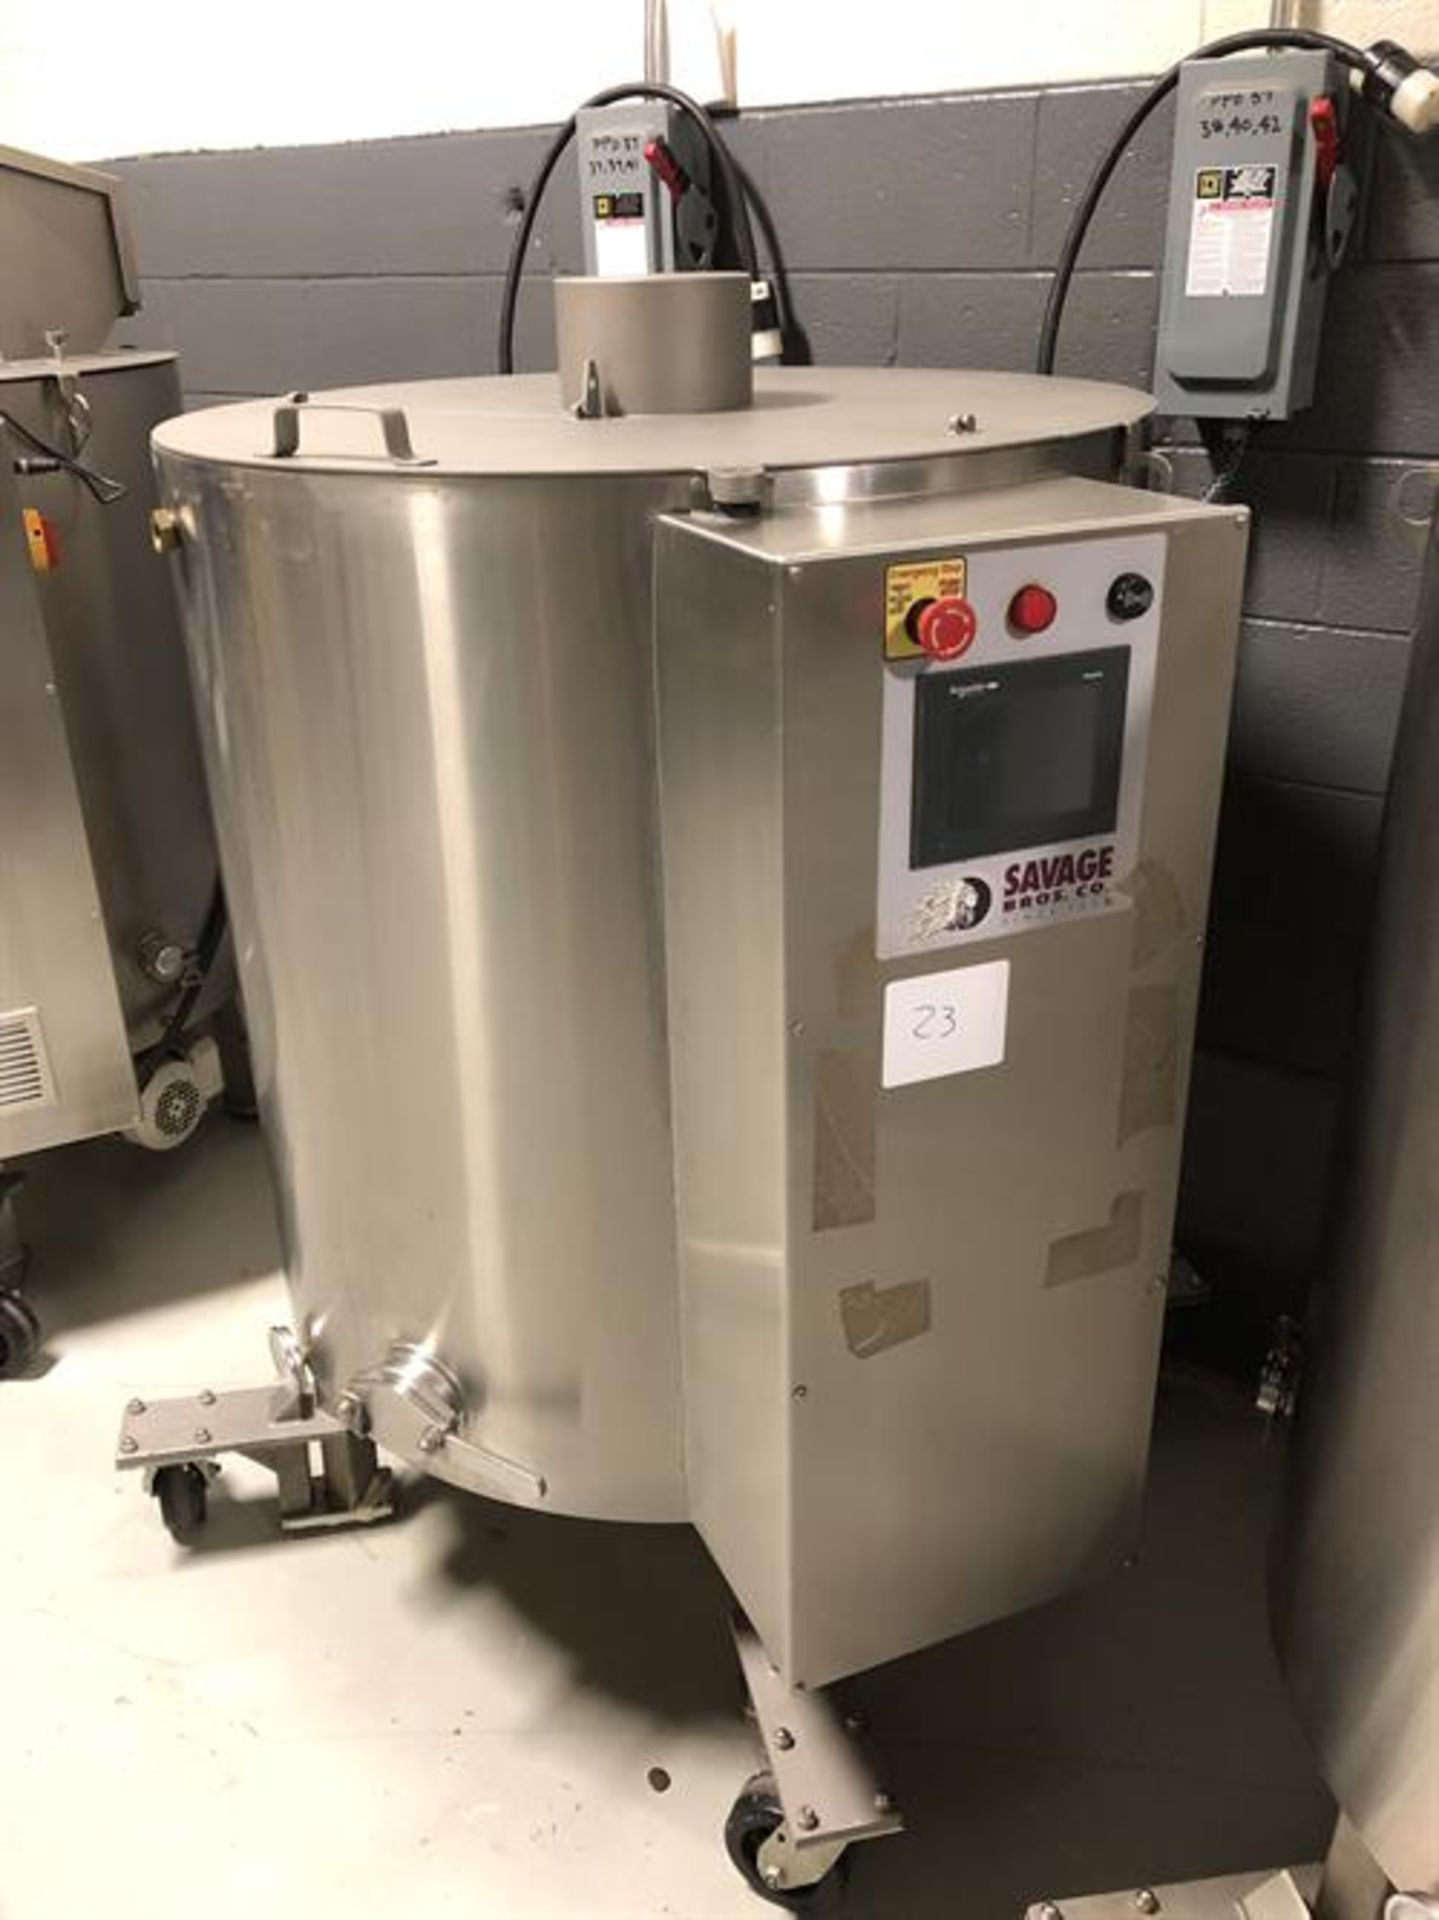 Lot 16 - Savage 1250-lb Stainless Steel Chocolate Melter - model 0974-40, with PLC touchscreen controls, -